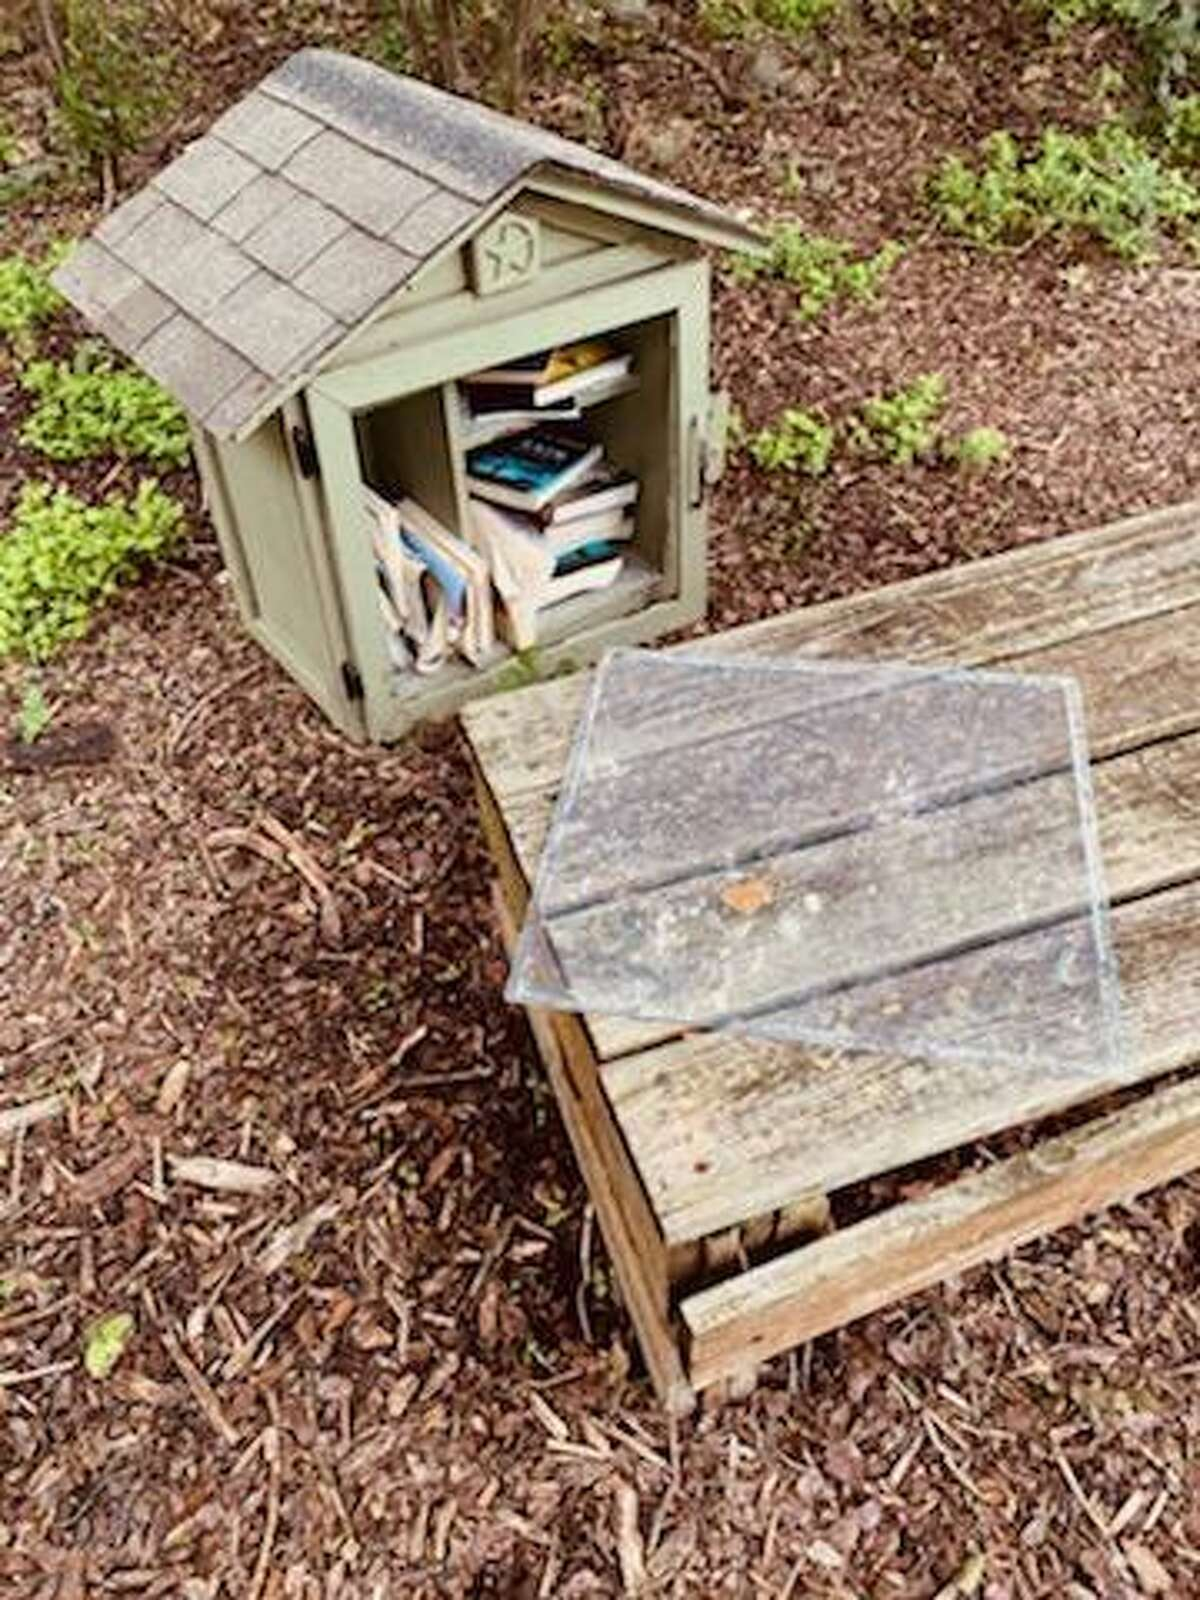 Unknown vandals attacked Alamo Heights Community Garden June 4, damaging picnic tables and the Little Free Library.